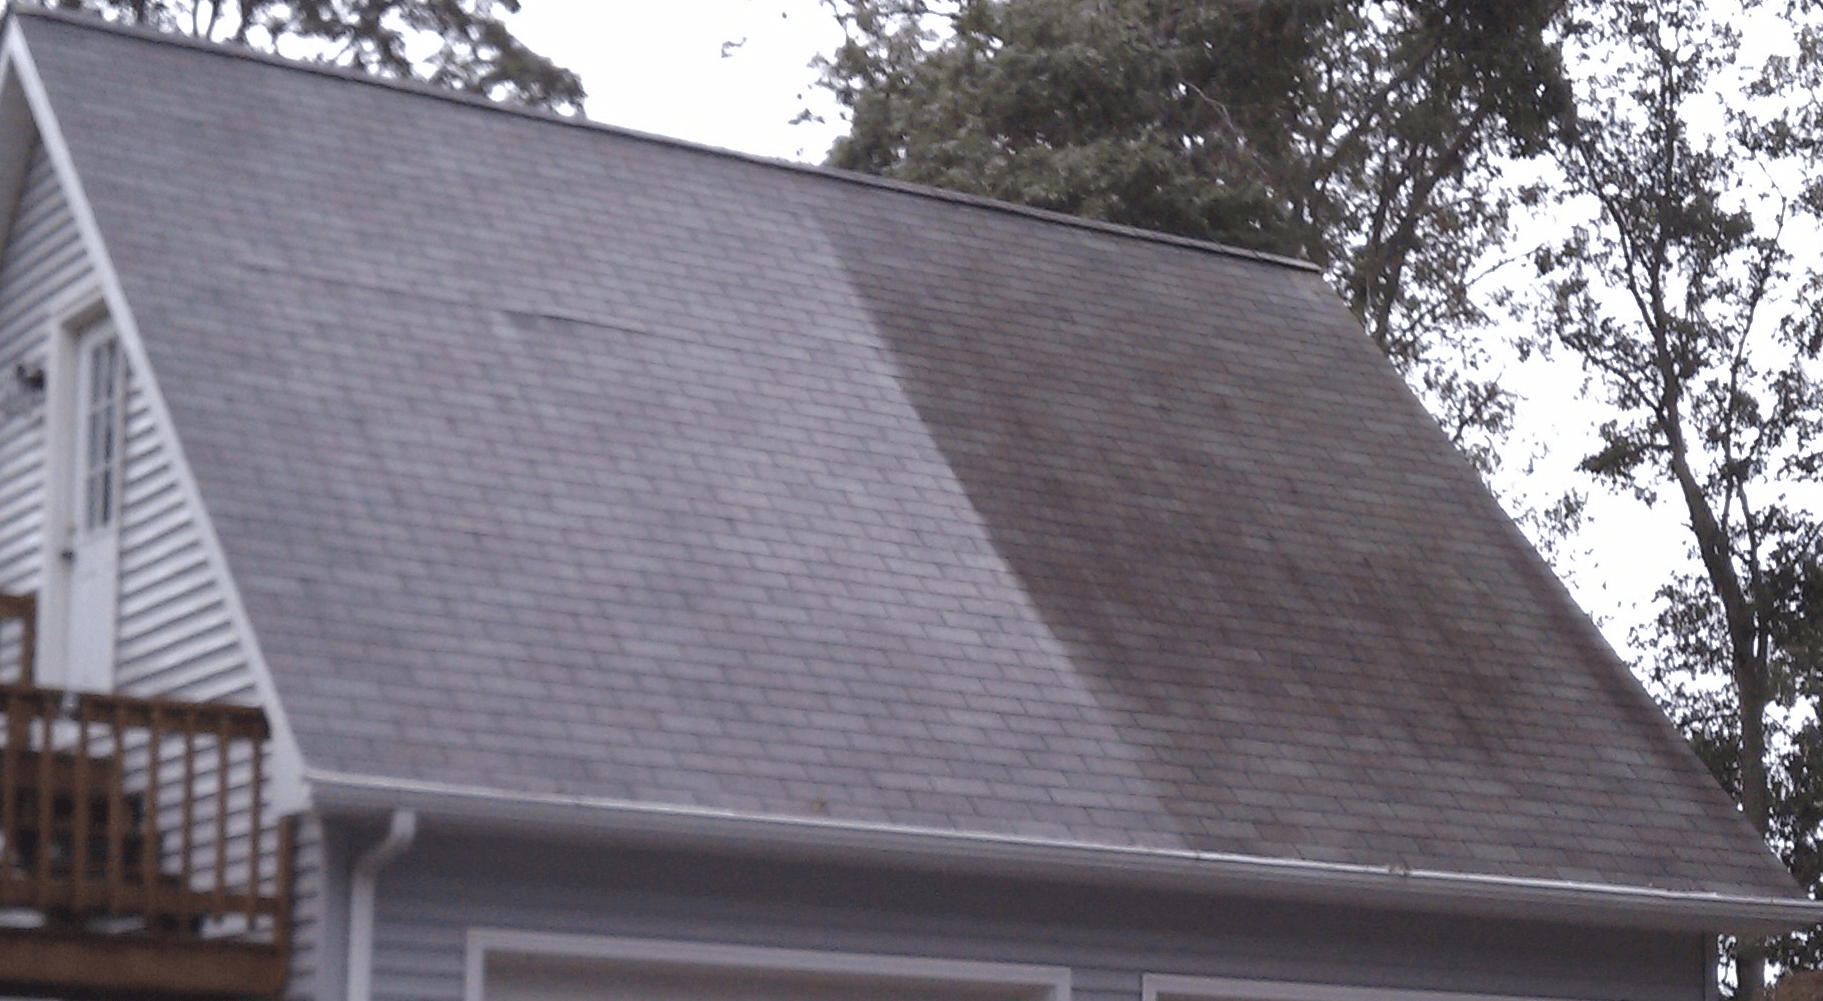 Roof Washing – Cleaning Roof Shingles